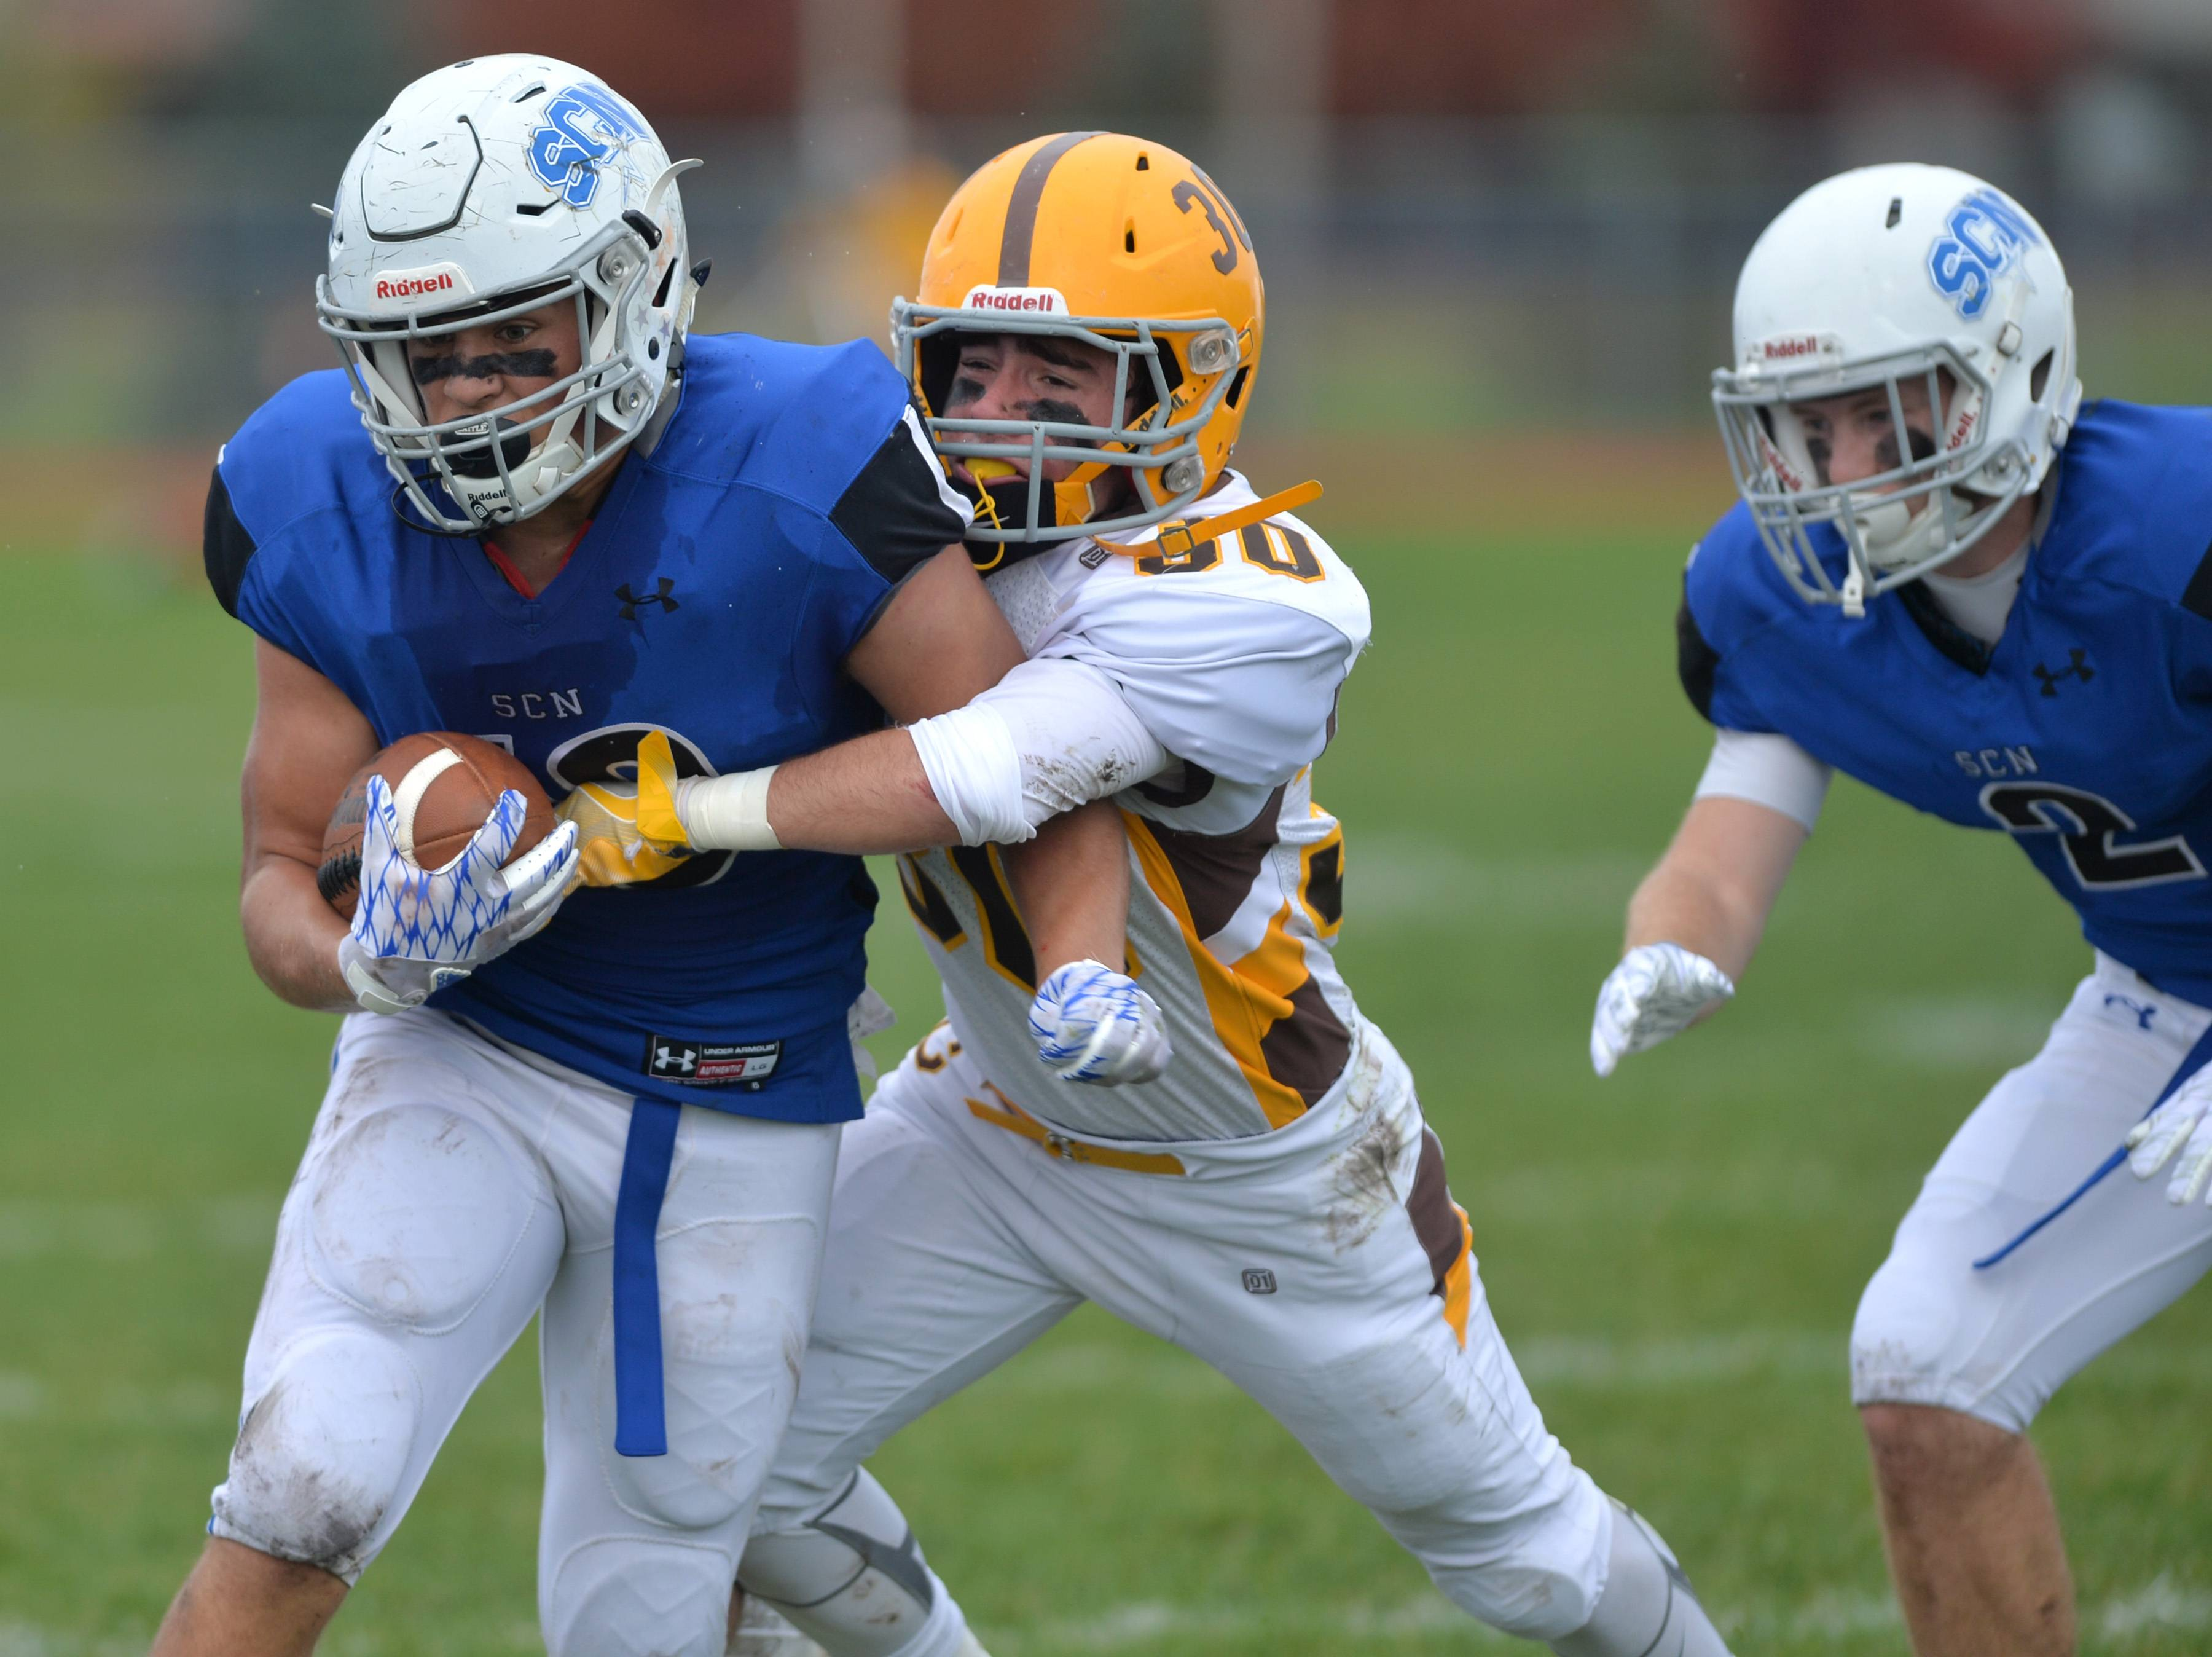 St. Charles Norths Antonio Trippiedi fights for yardage as Carmel defender John Misak makes the stop in the second quarter of their IHSA Class 7A playoff age Saturday in St. Charles. The North Stars advanced with a 31-24 double overtime win.